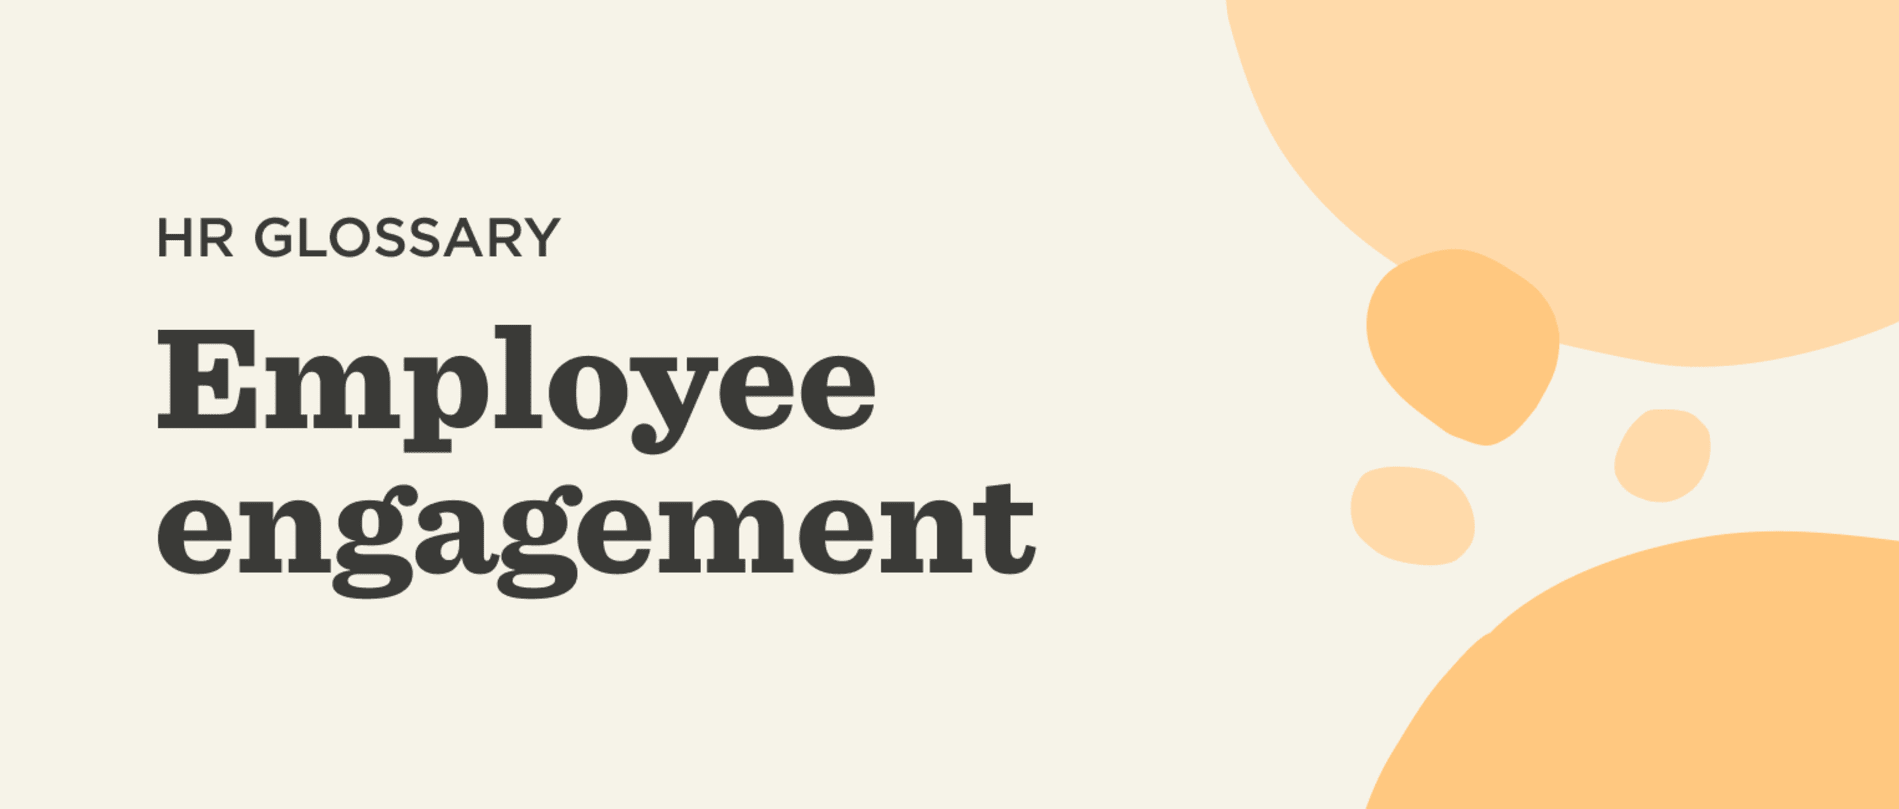 What is employee engagement? - Employee-engagement-Glossary-banner.png